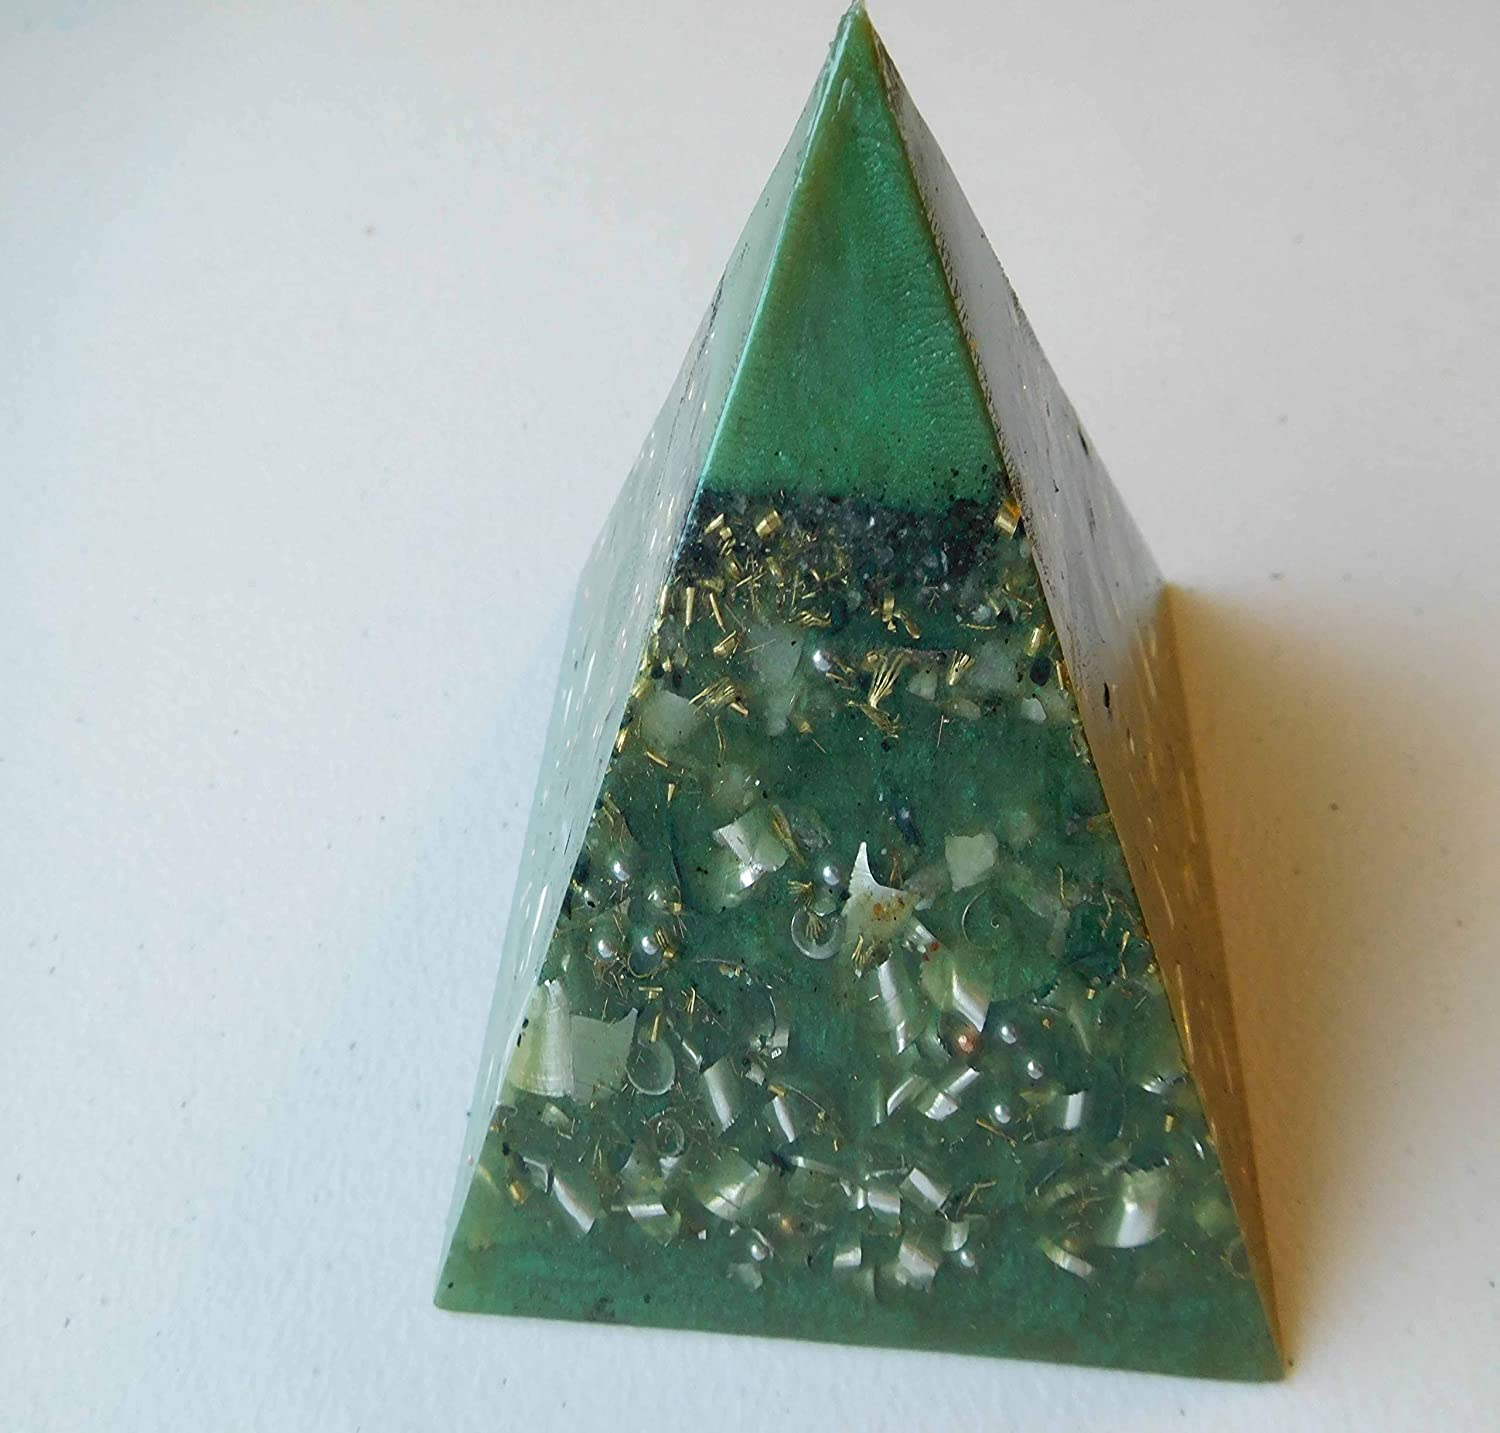 Spring Super beauty product restock quality top Green Tall Large Pyramid Accumula Orgone Energy Outlet SALE Generator